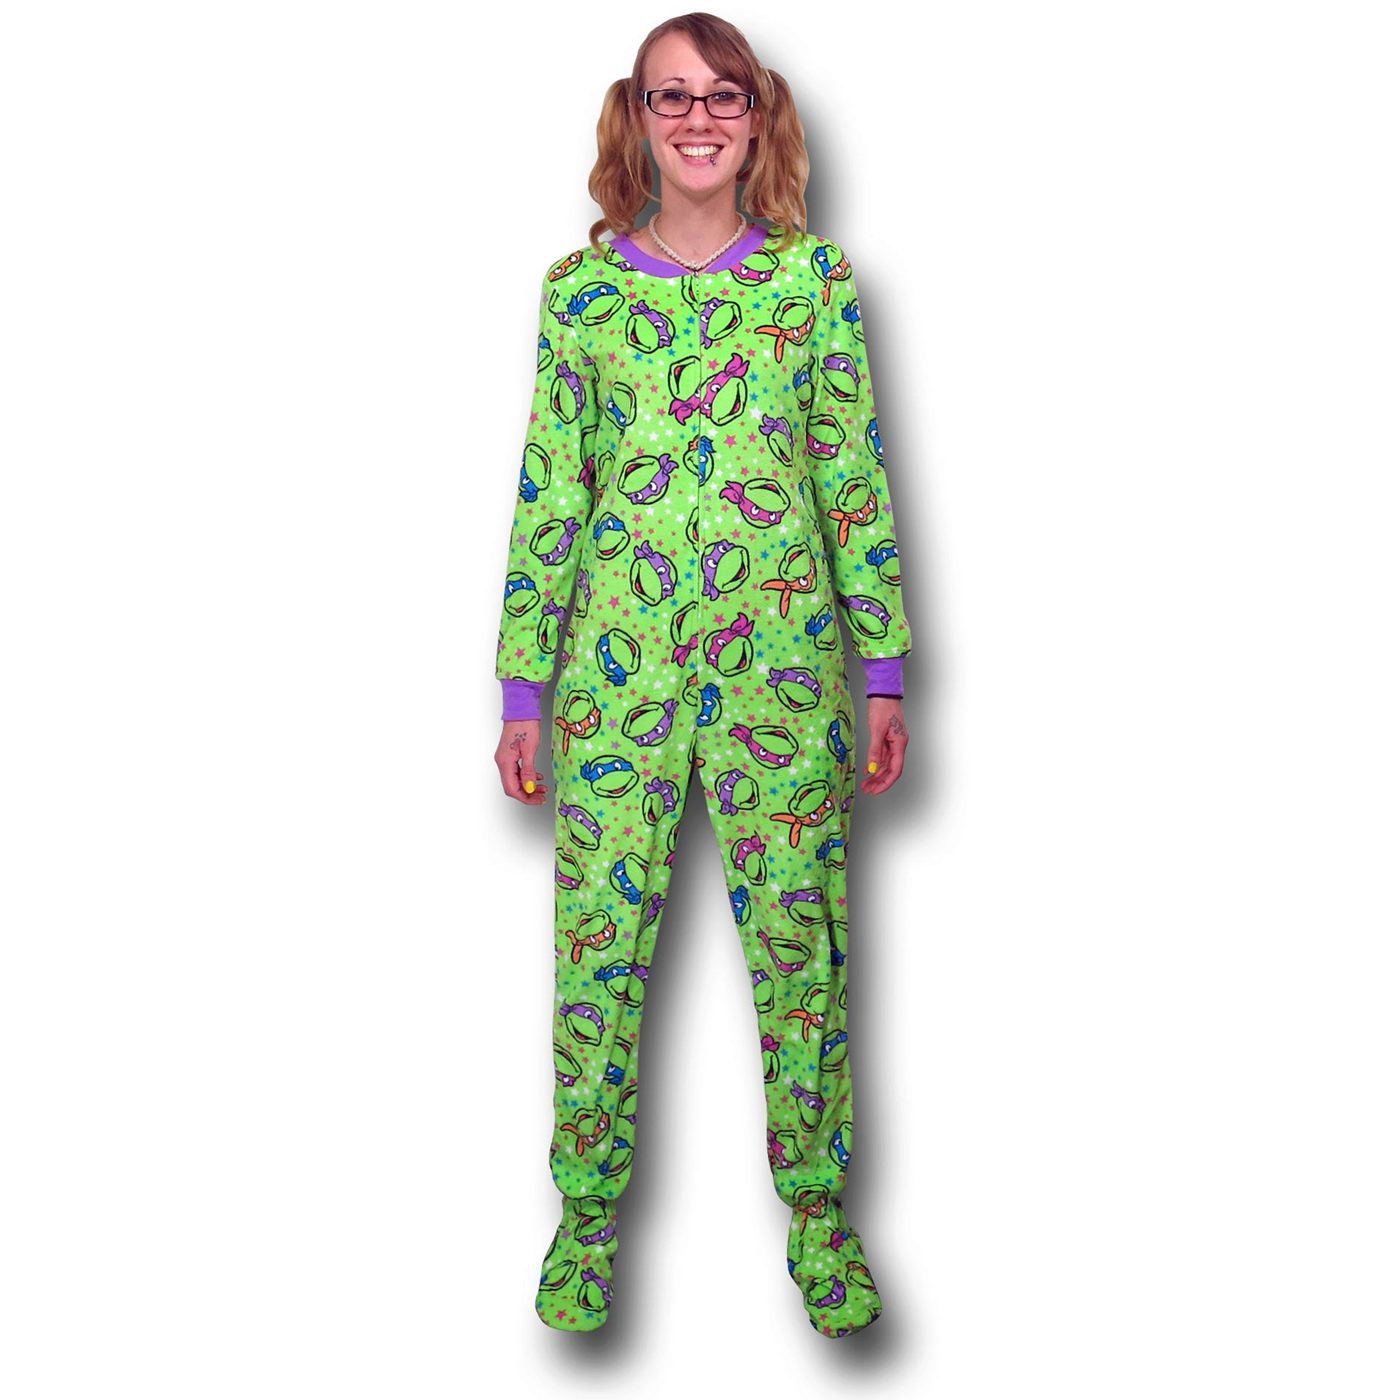 TMNT Faces Women's Footed Pajamas